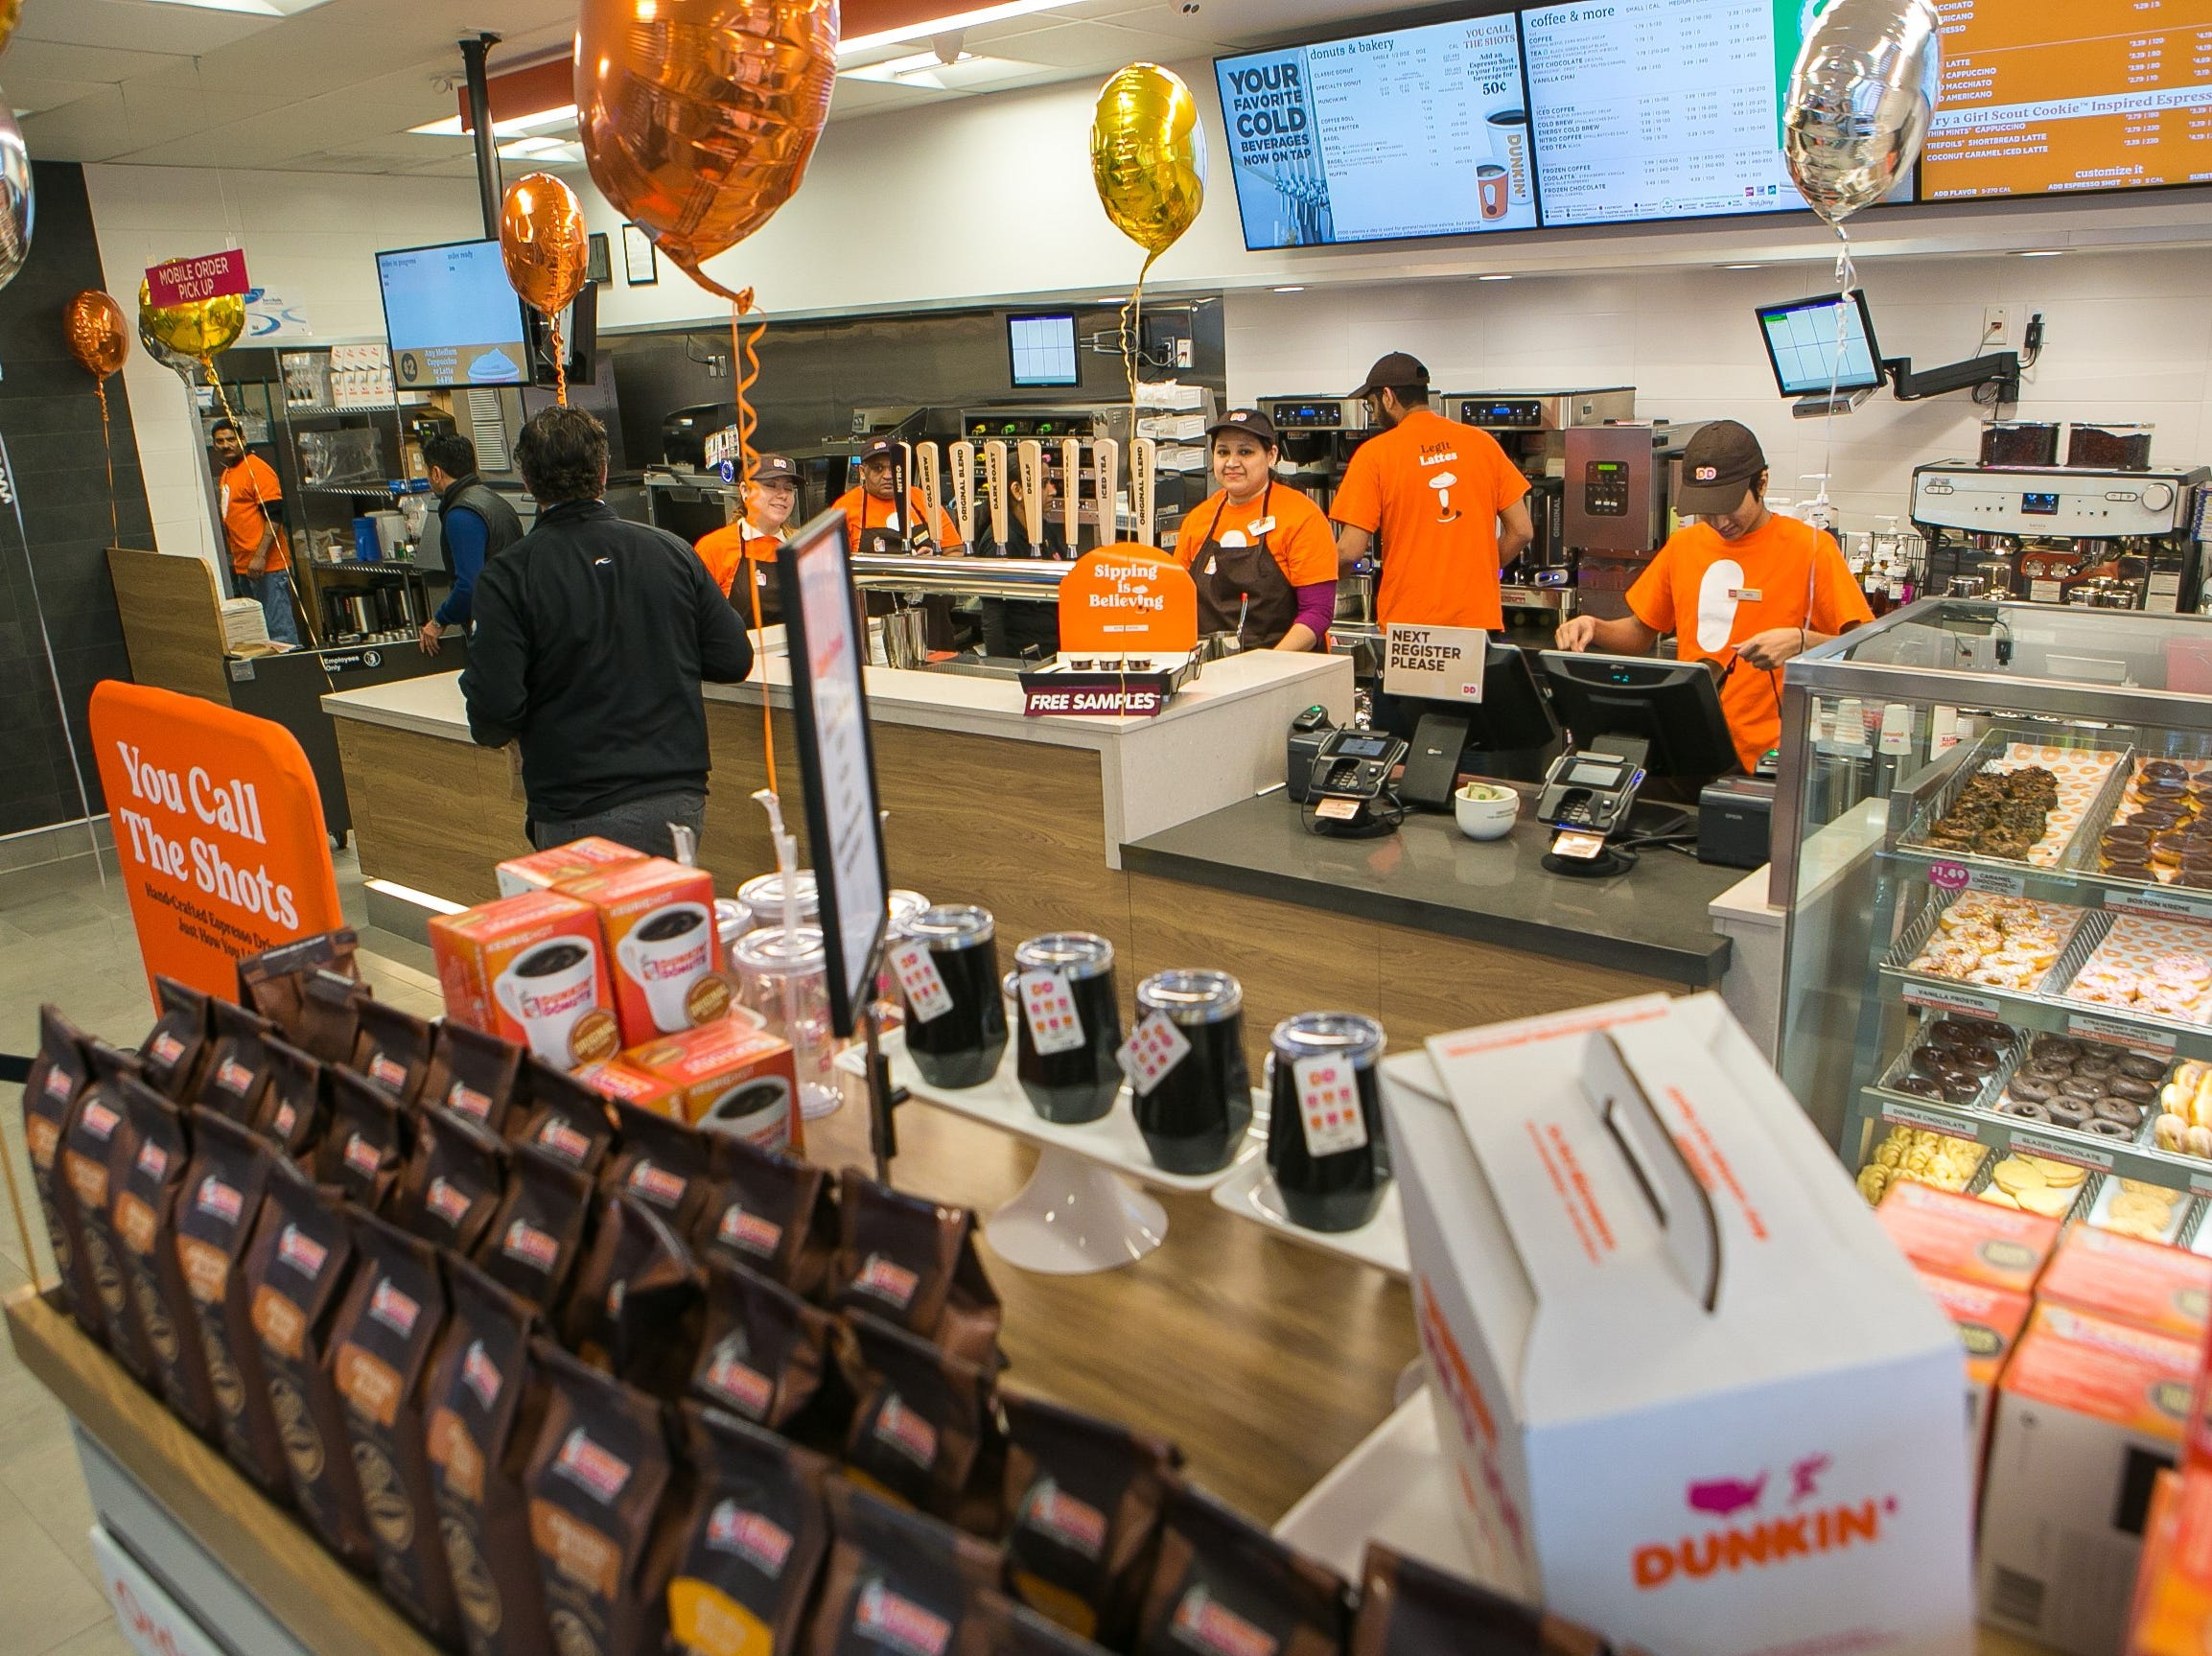 The Dunkin' chain, formerly known as Dunkin' Donuts, has opened one of its first new 'concept' stores today in north Wilmington on Naamans Road. The Delaware store is one of about 60 new and remodeled Dunkin' restaurants with new designs and the new Dunkin' brand name.